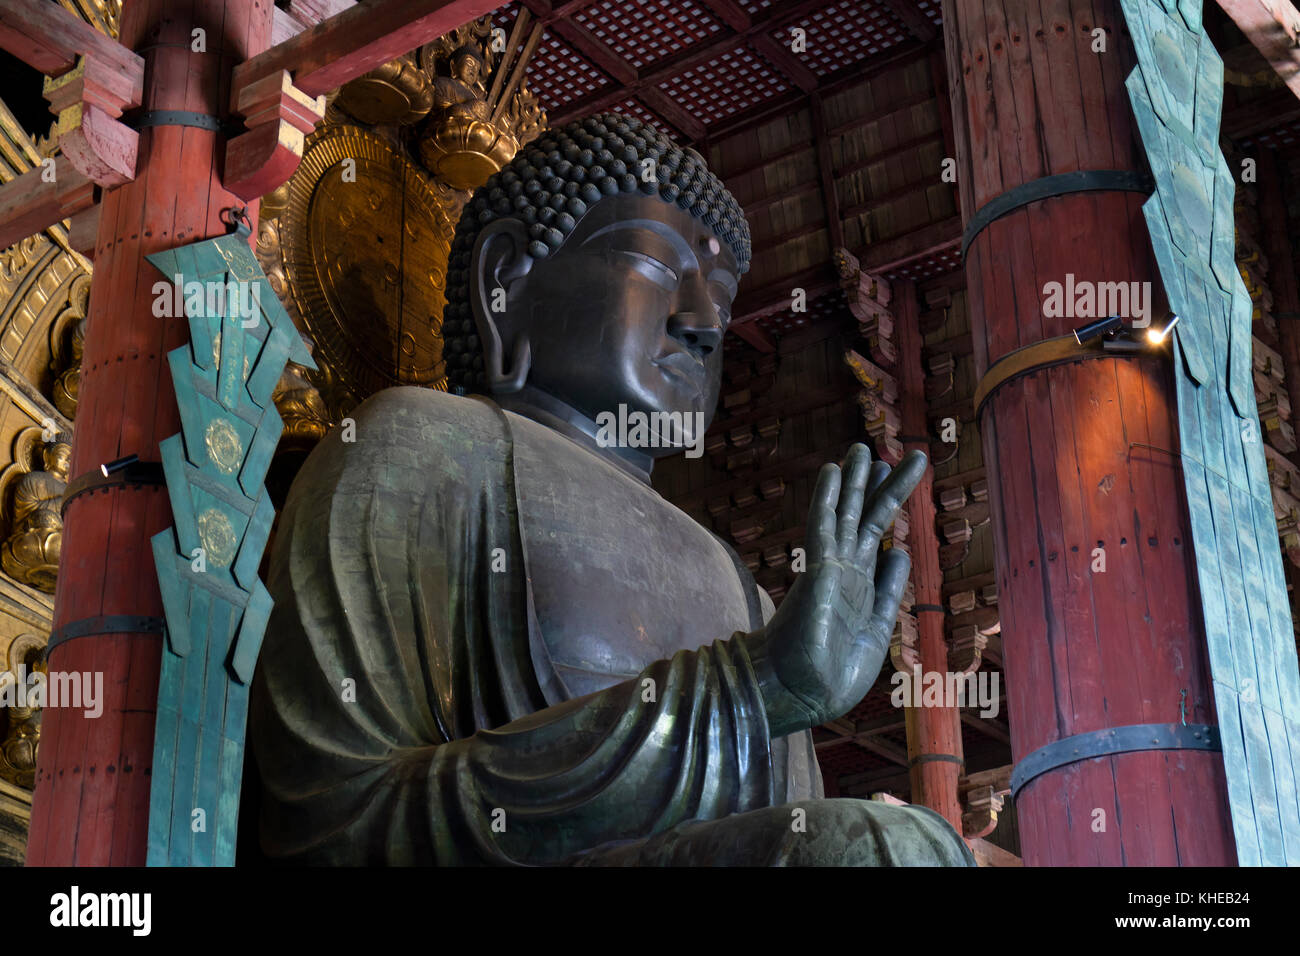 Nara, Japan -  May 29, 2017: The world's largest bronze statue of Buddha in the Great Buddha Hal, Daibutsuden - Stock Image